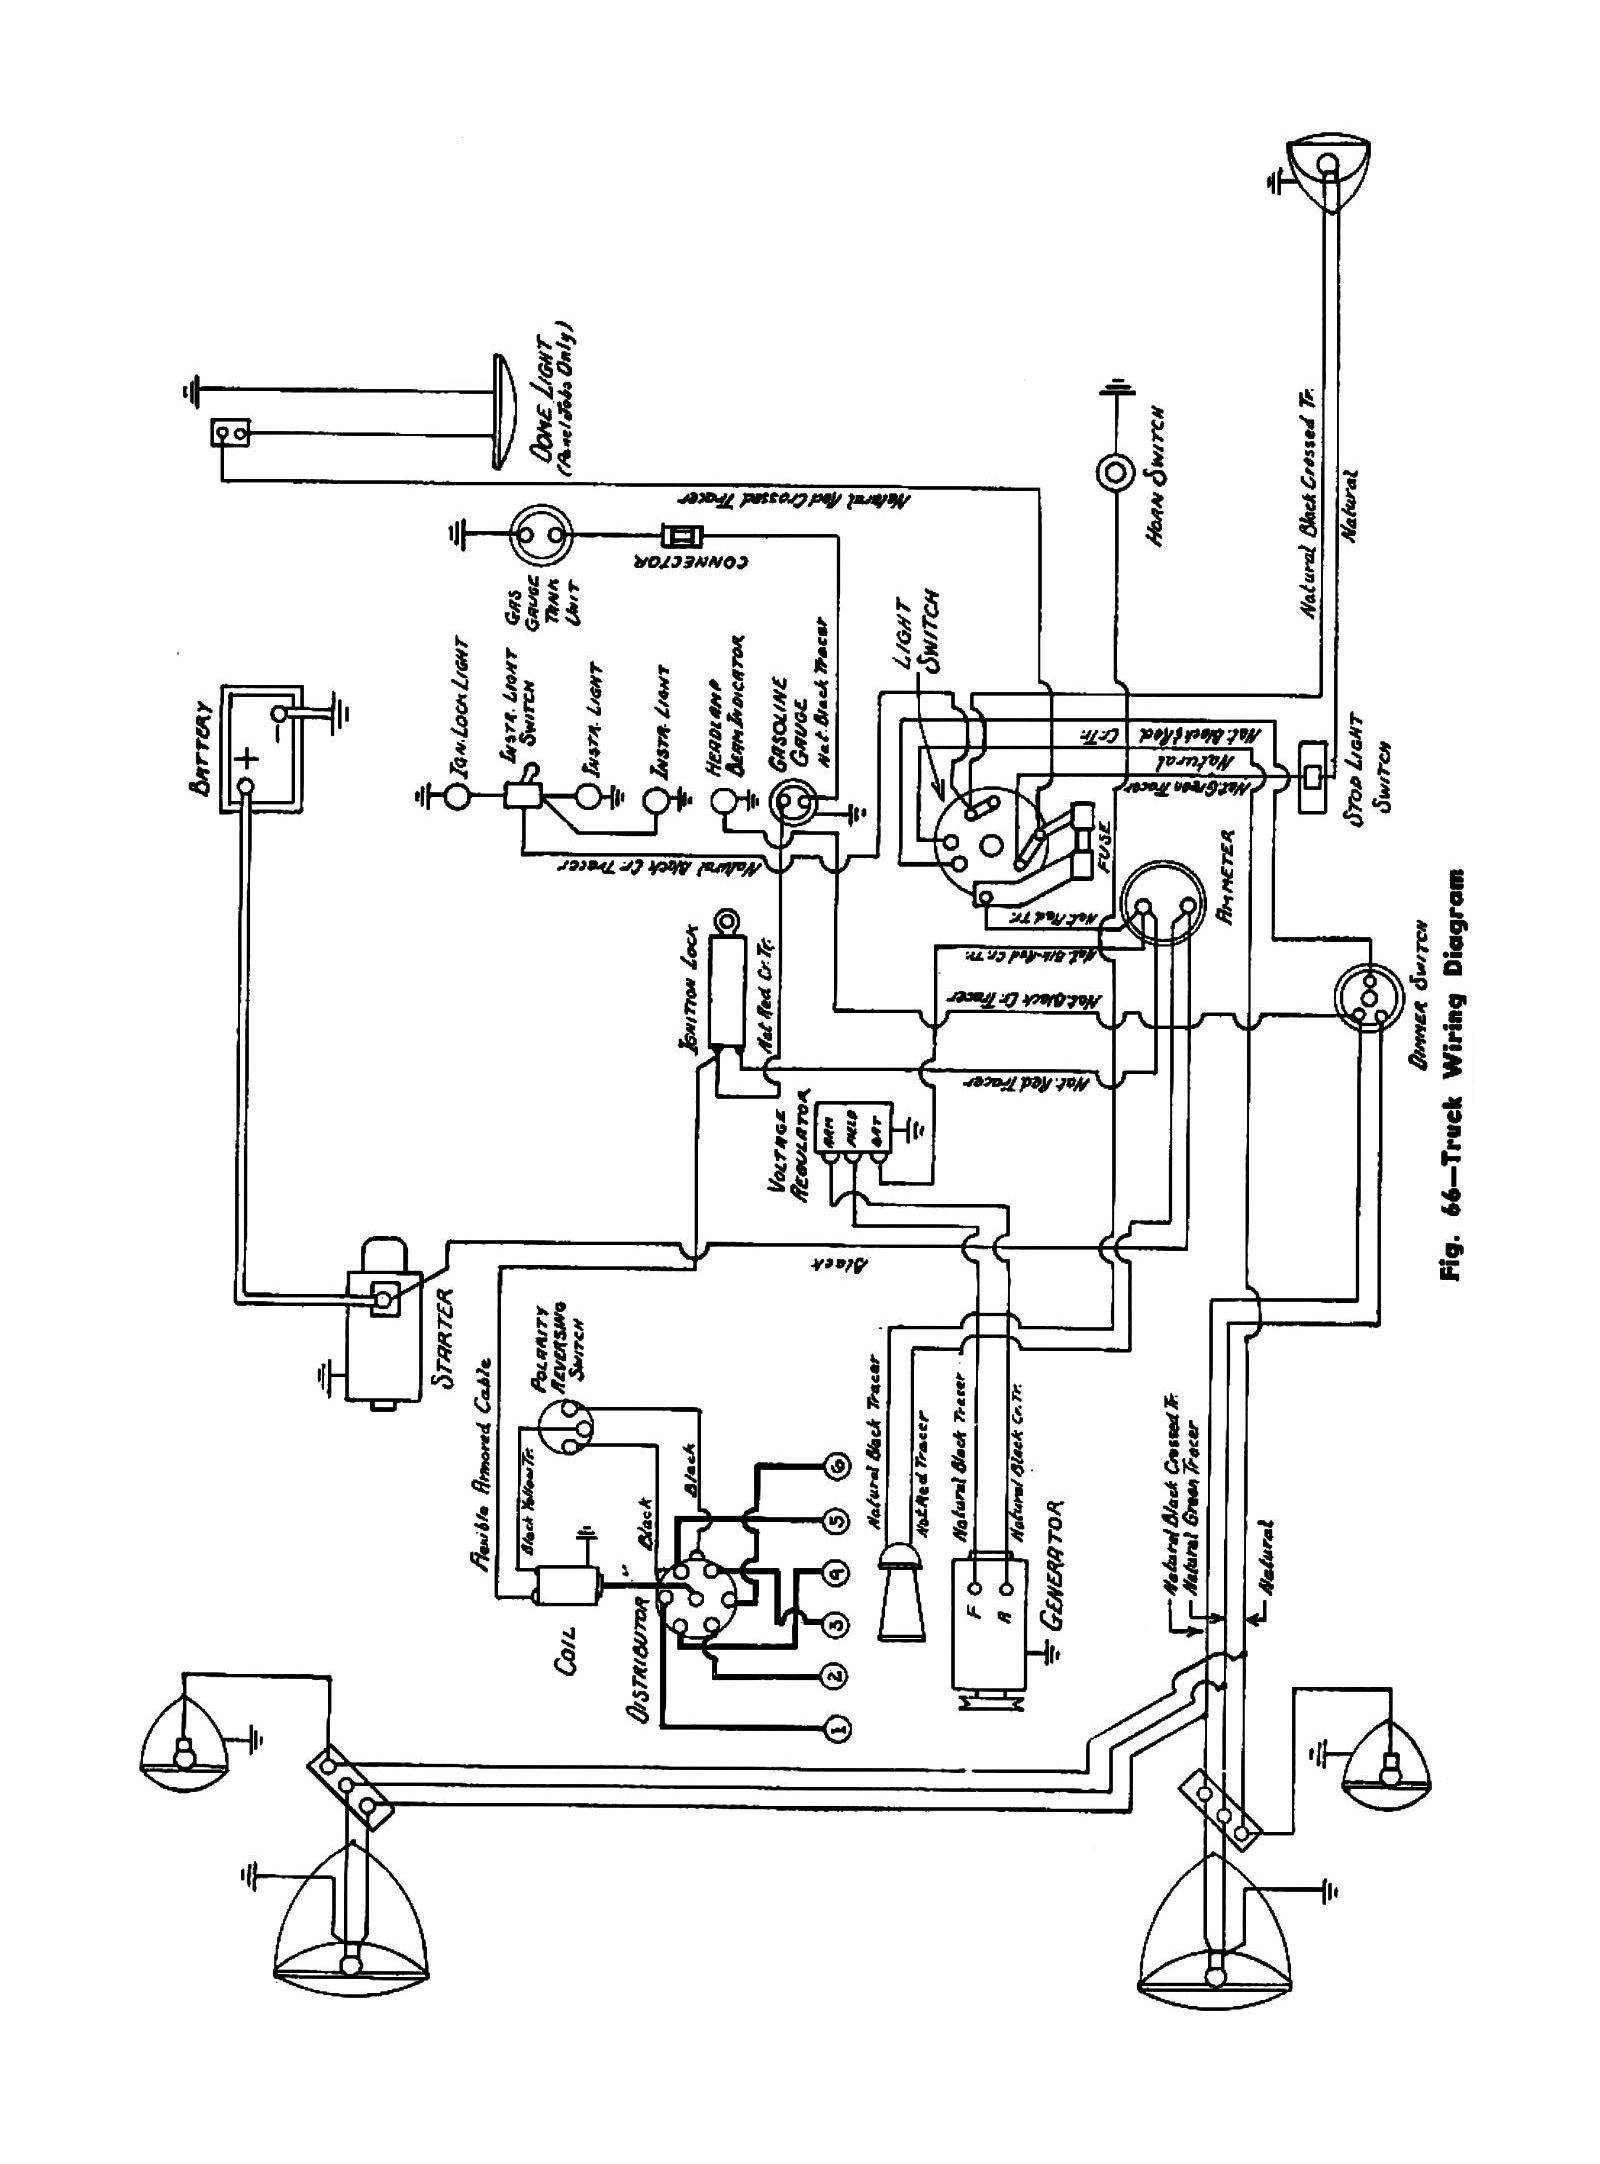 45truck ihc truck wiring diagrams mazda truck wiring diagrams \u2022 free  at bayanpartner.co